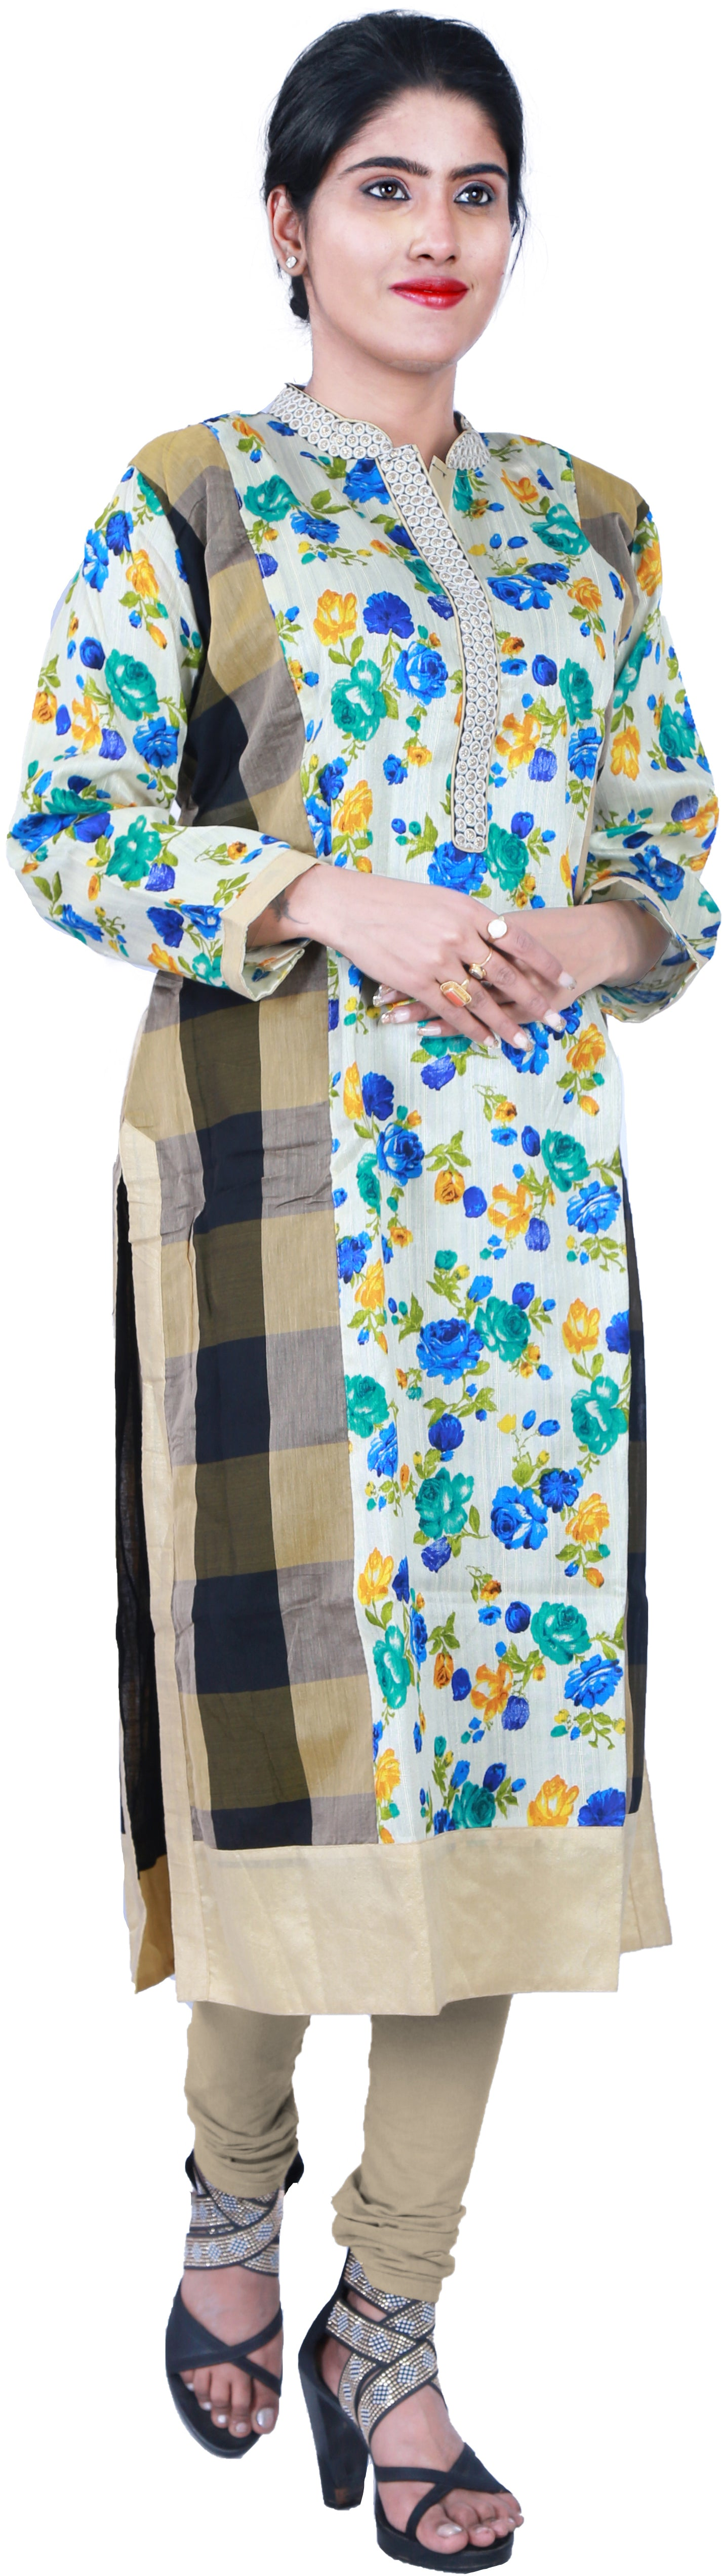 SMSAREE Mult-Colour Designer Casual Partywear Floral Printed Raw Silk Zari & Thread Hand Embroidery Work Stylish Women Kurti Kurta With Free Matching Leggings D307